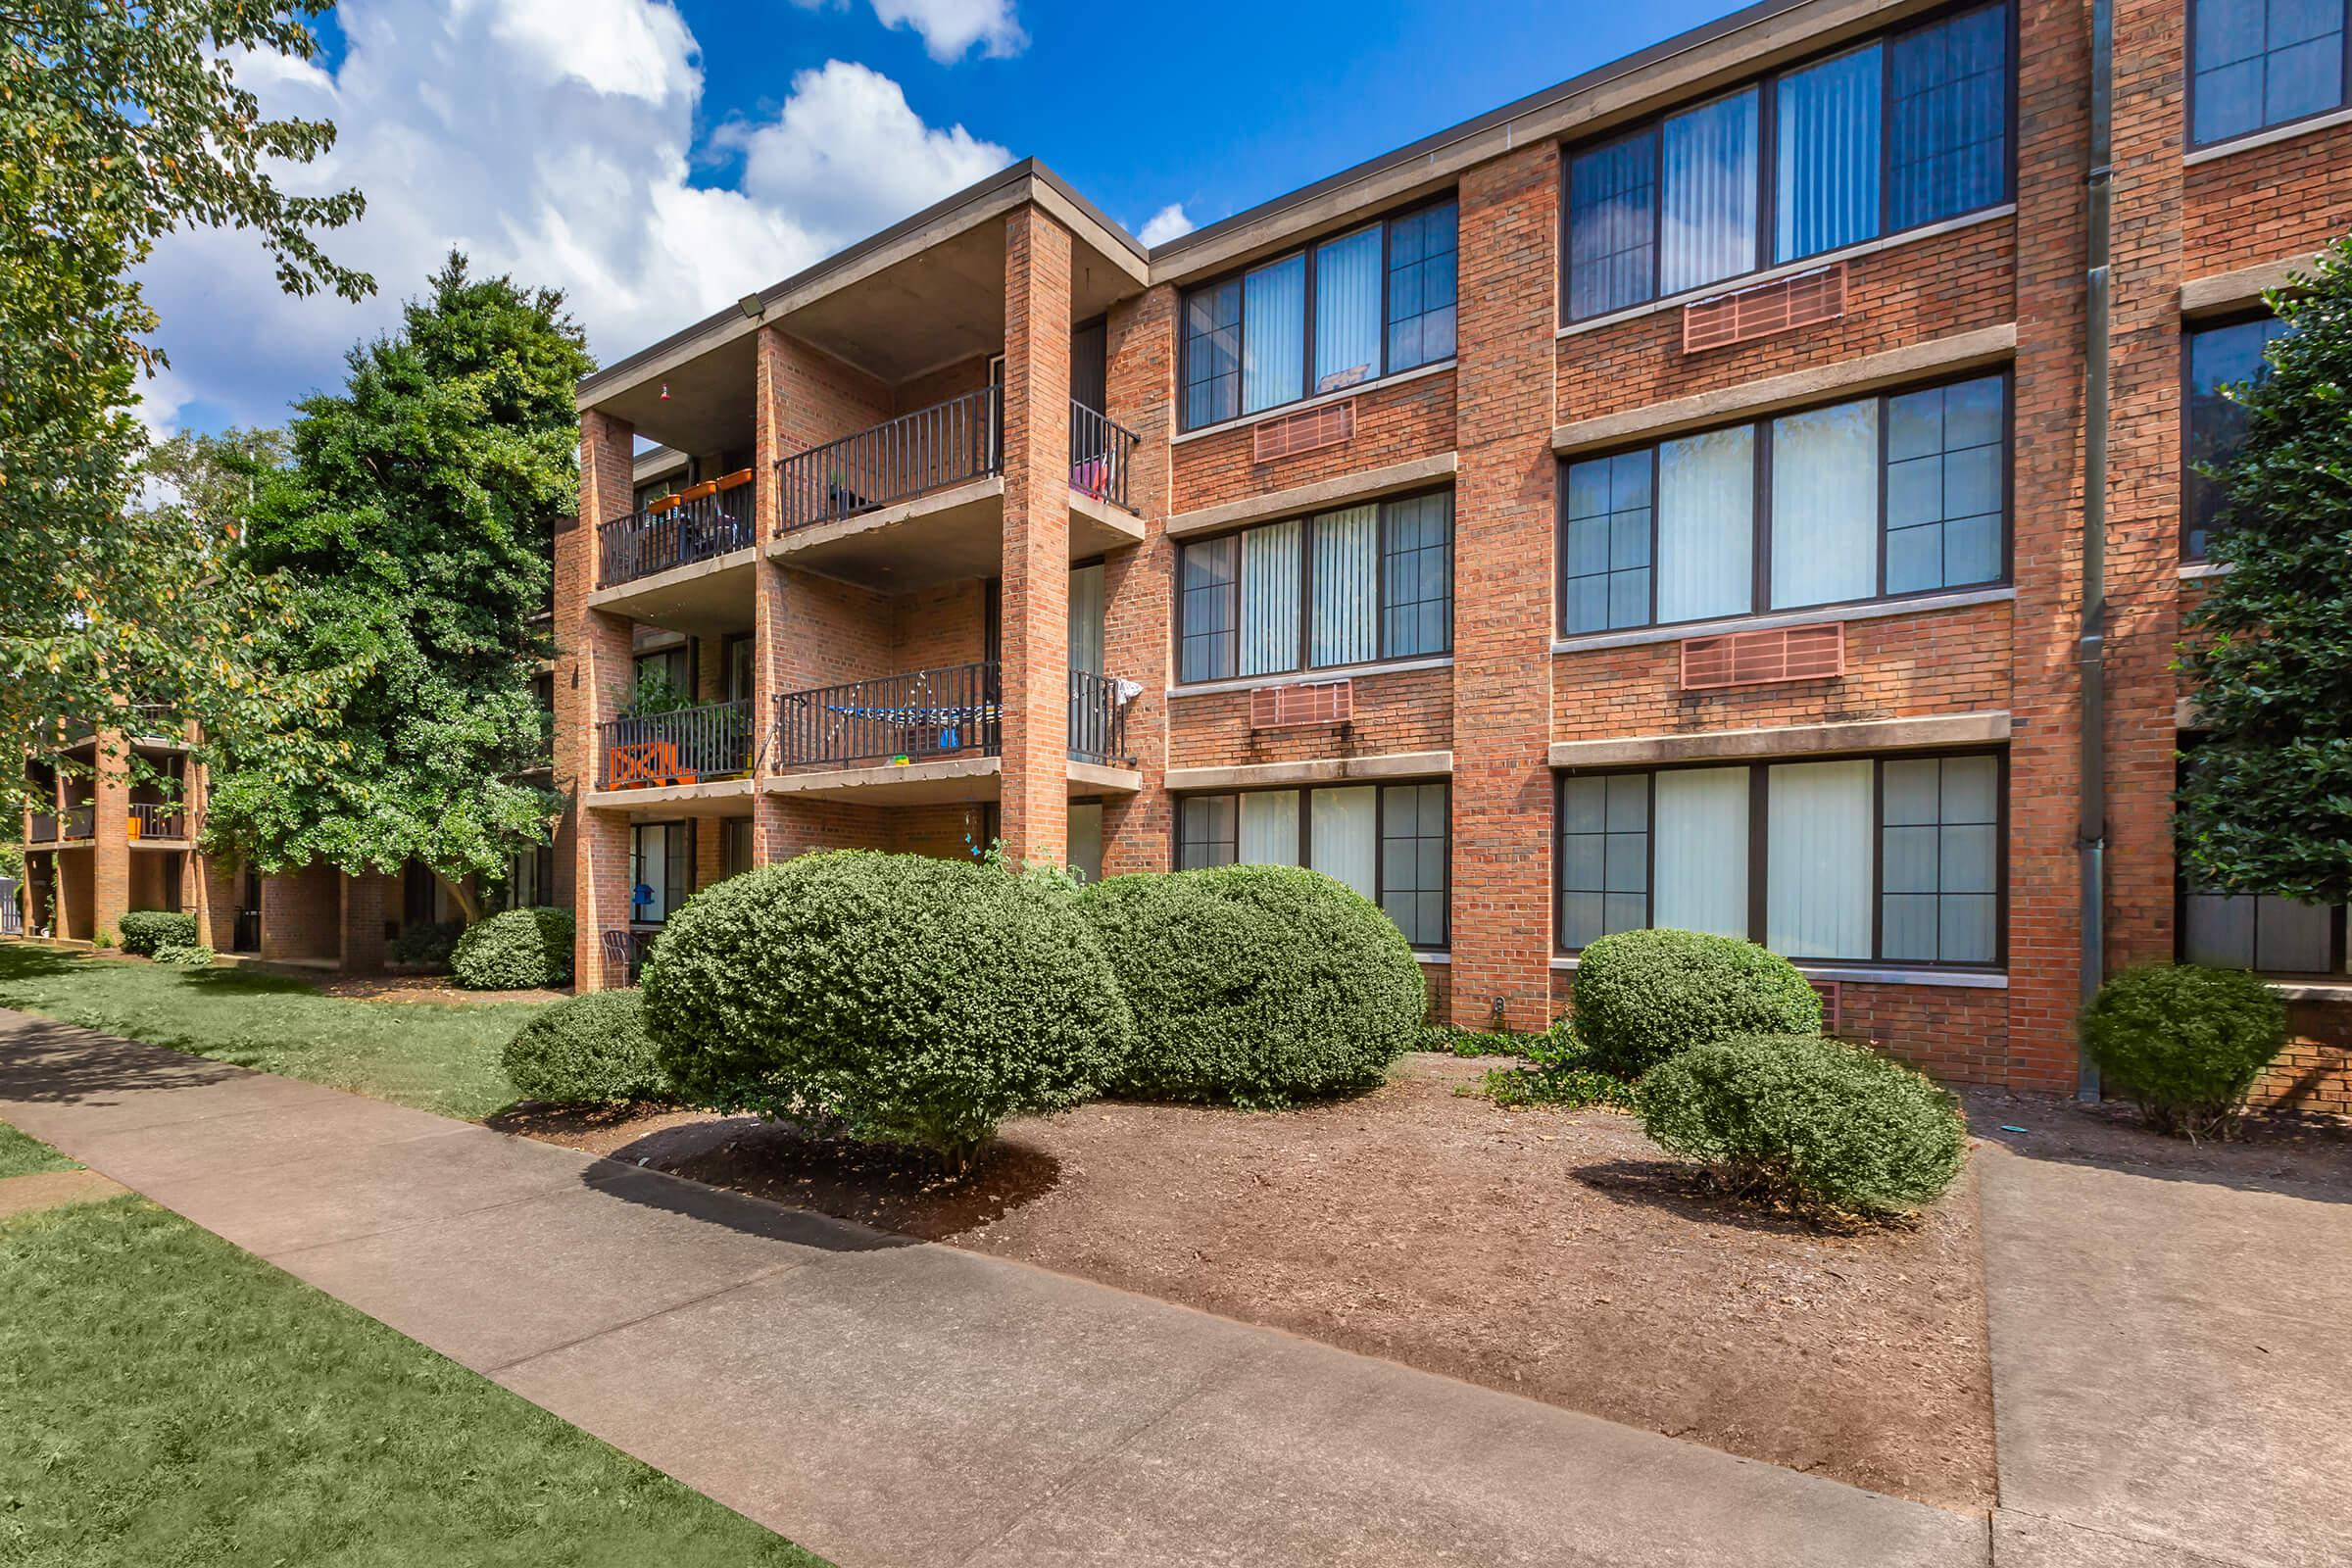 ONE BEDROOM APARTMENT HOMES FOR RENT IN KNOXVILLE, TENNESSEE